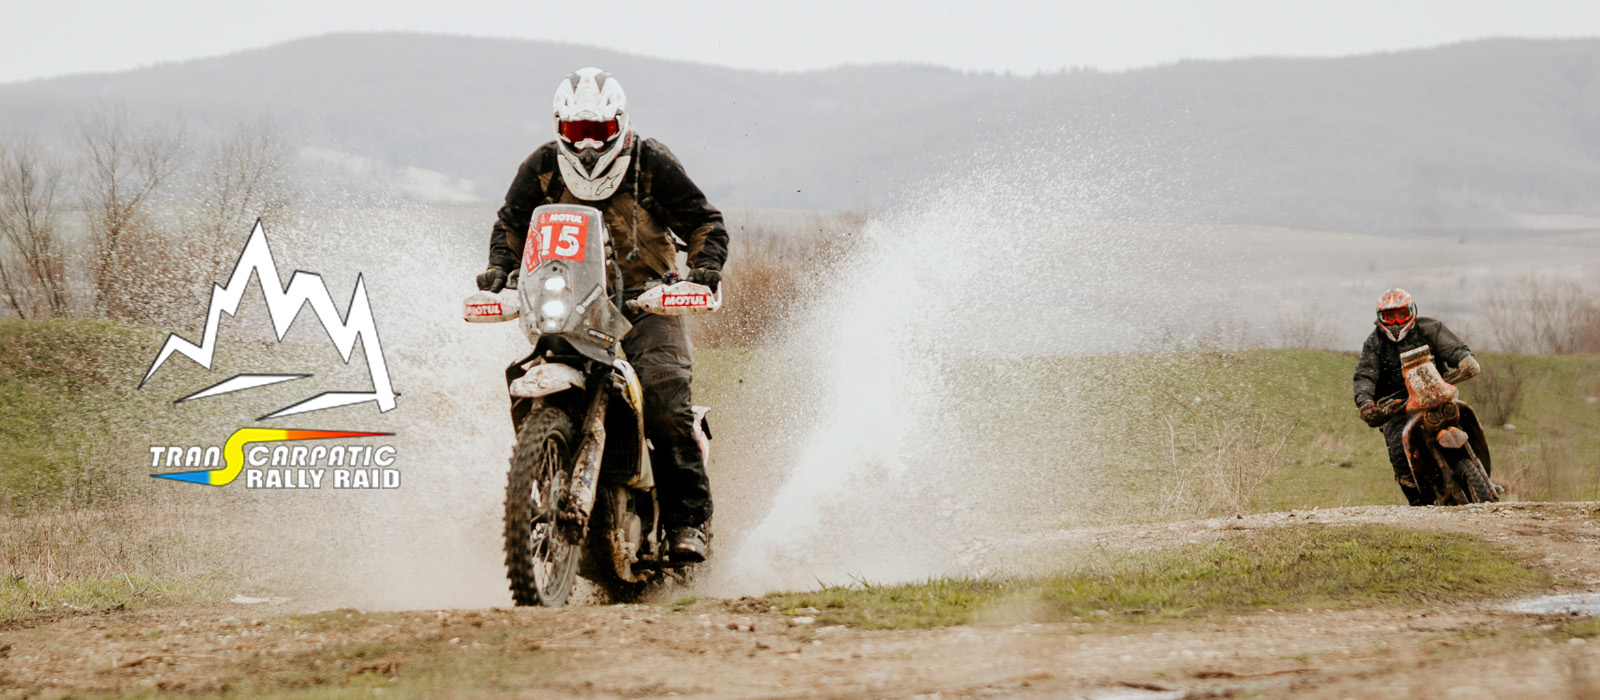 FRM - Romanian championship of RALLY RAID FOR MOTO